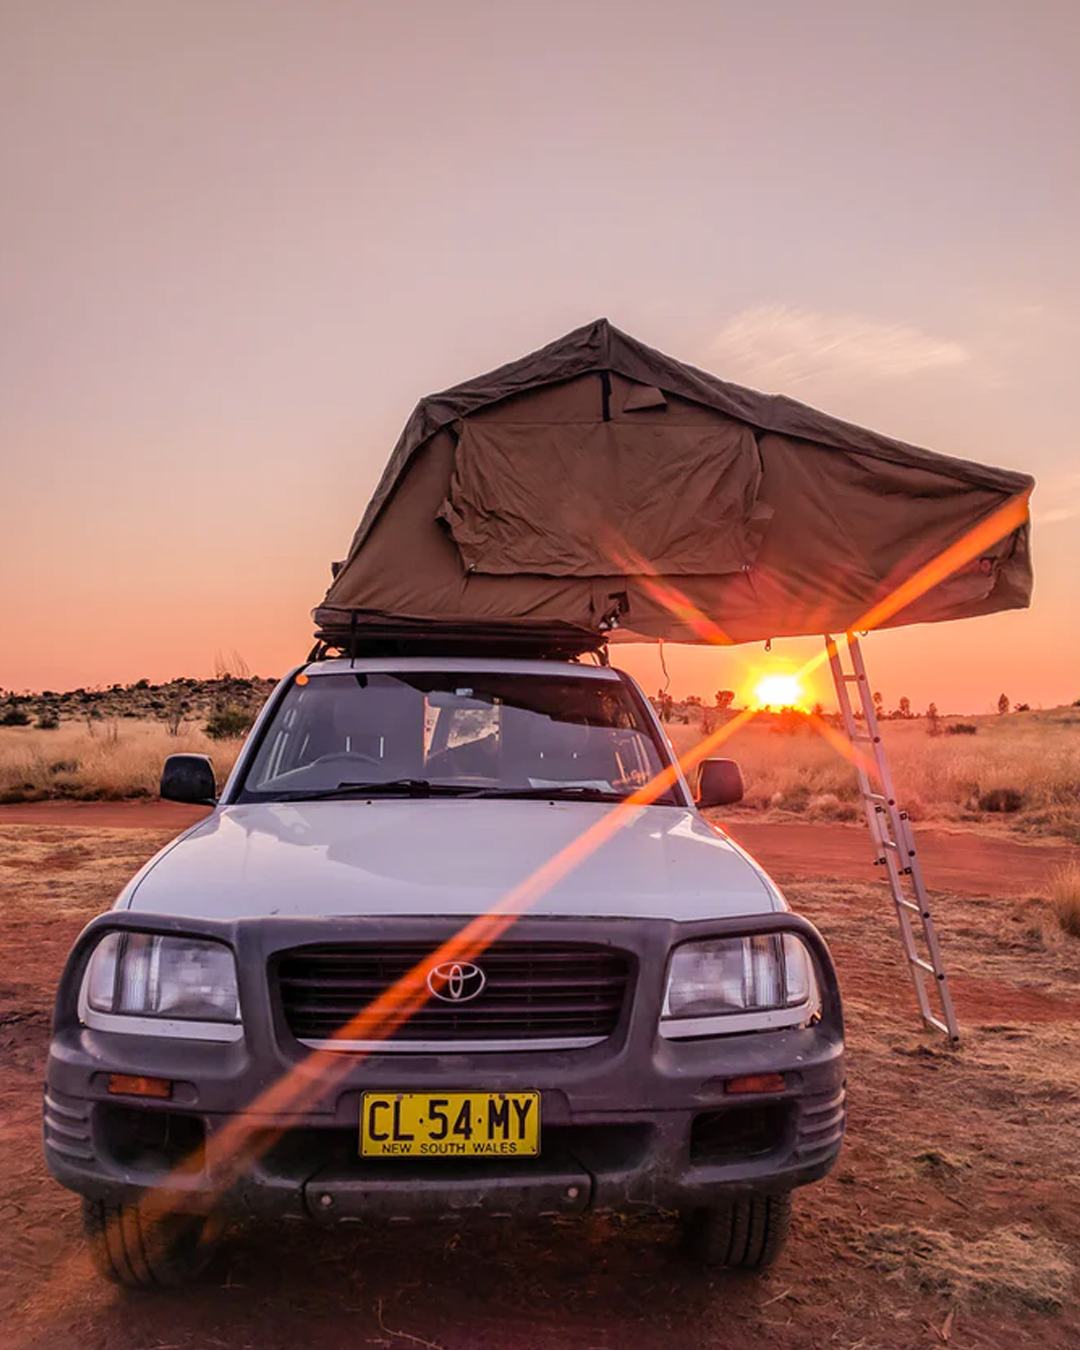 four wheel drive with overhead camping set up at sunset in Australian outback